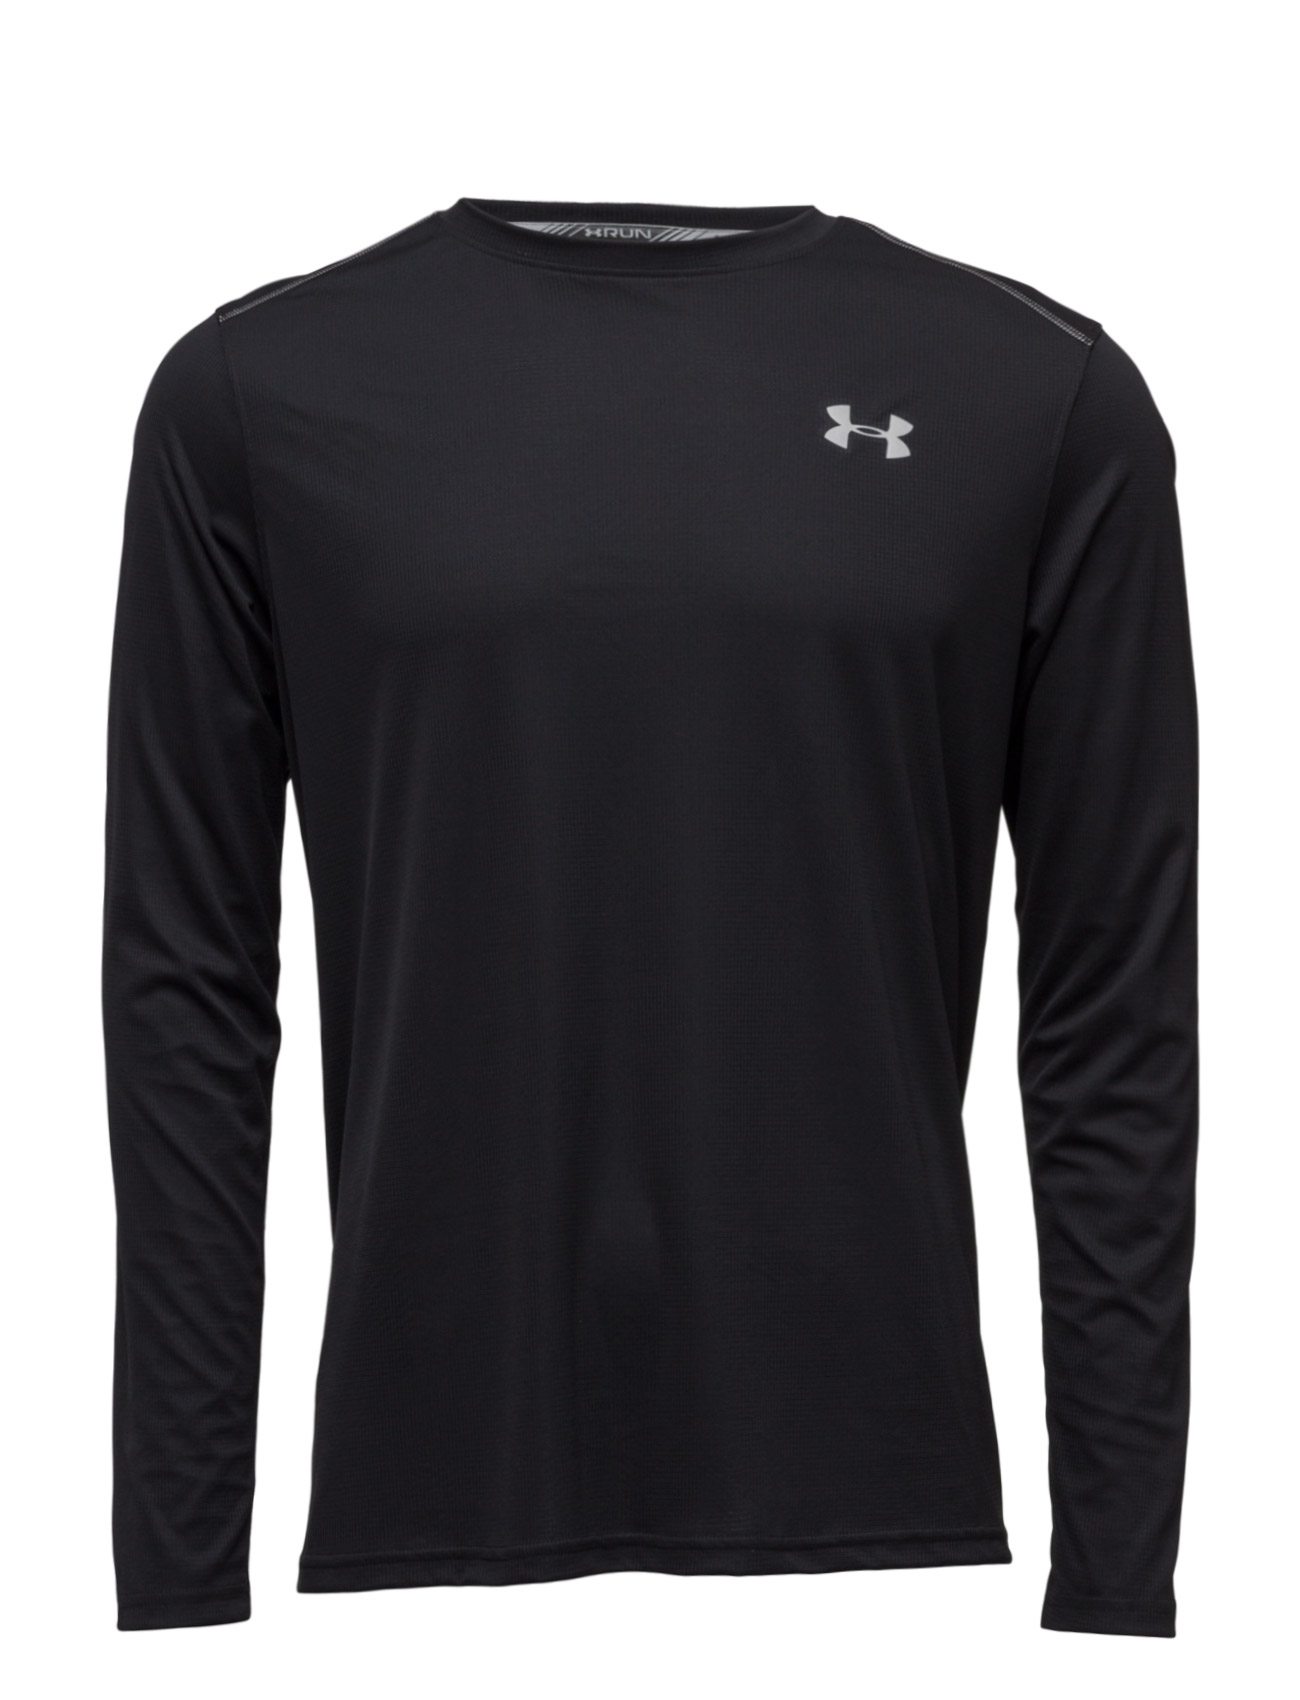 Ua Coolswitch Run L/S V2 Under Armour Sports toppe til Mænd i